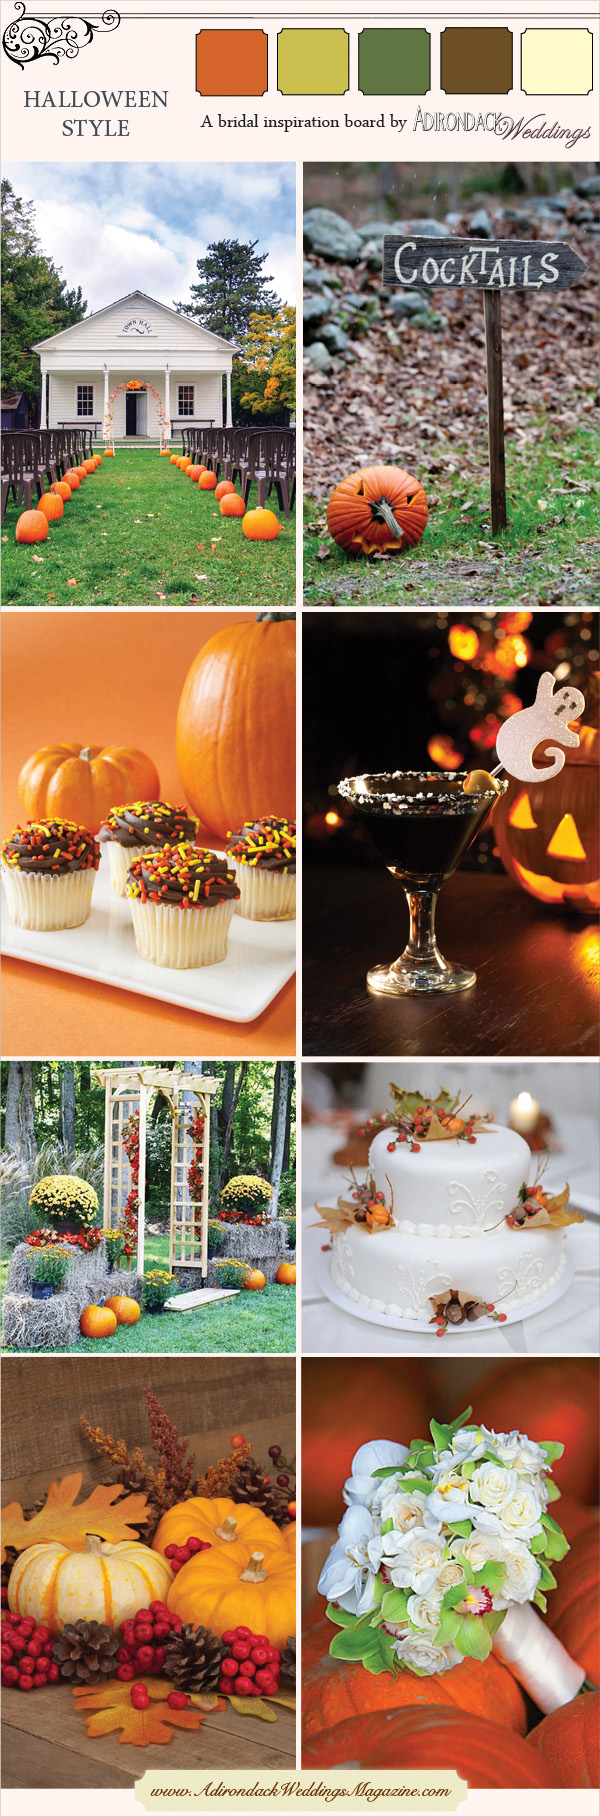 Halloween Inspiration Board | Adirondack Weddings Magazine